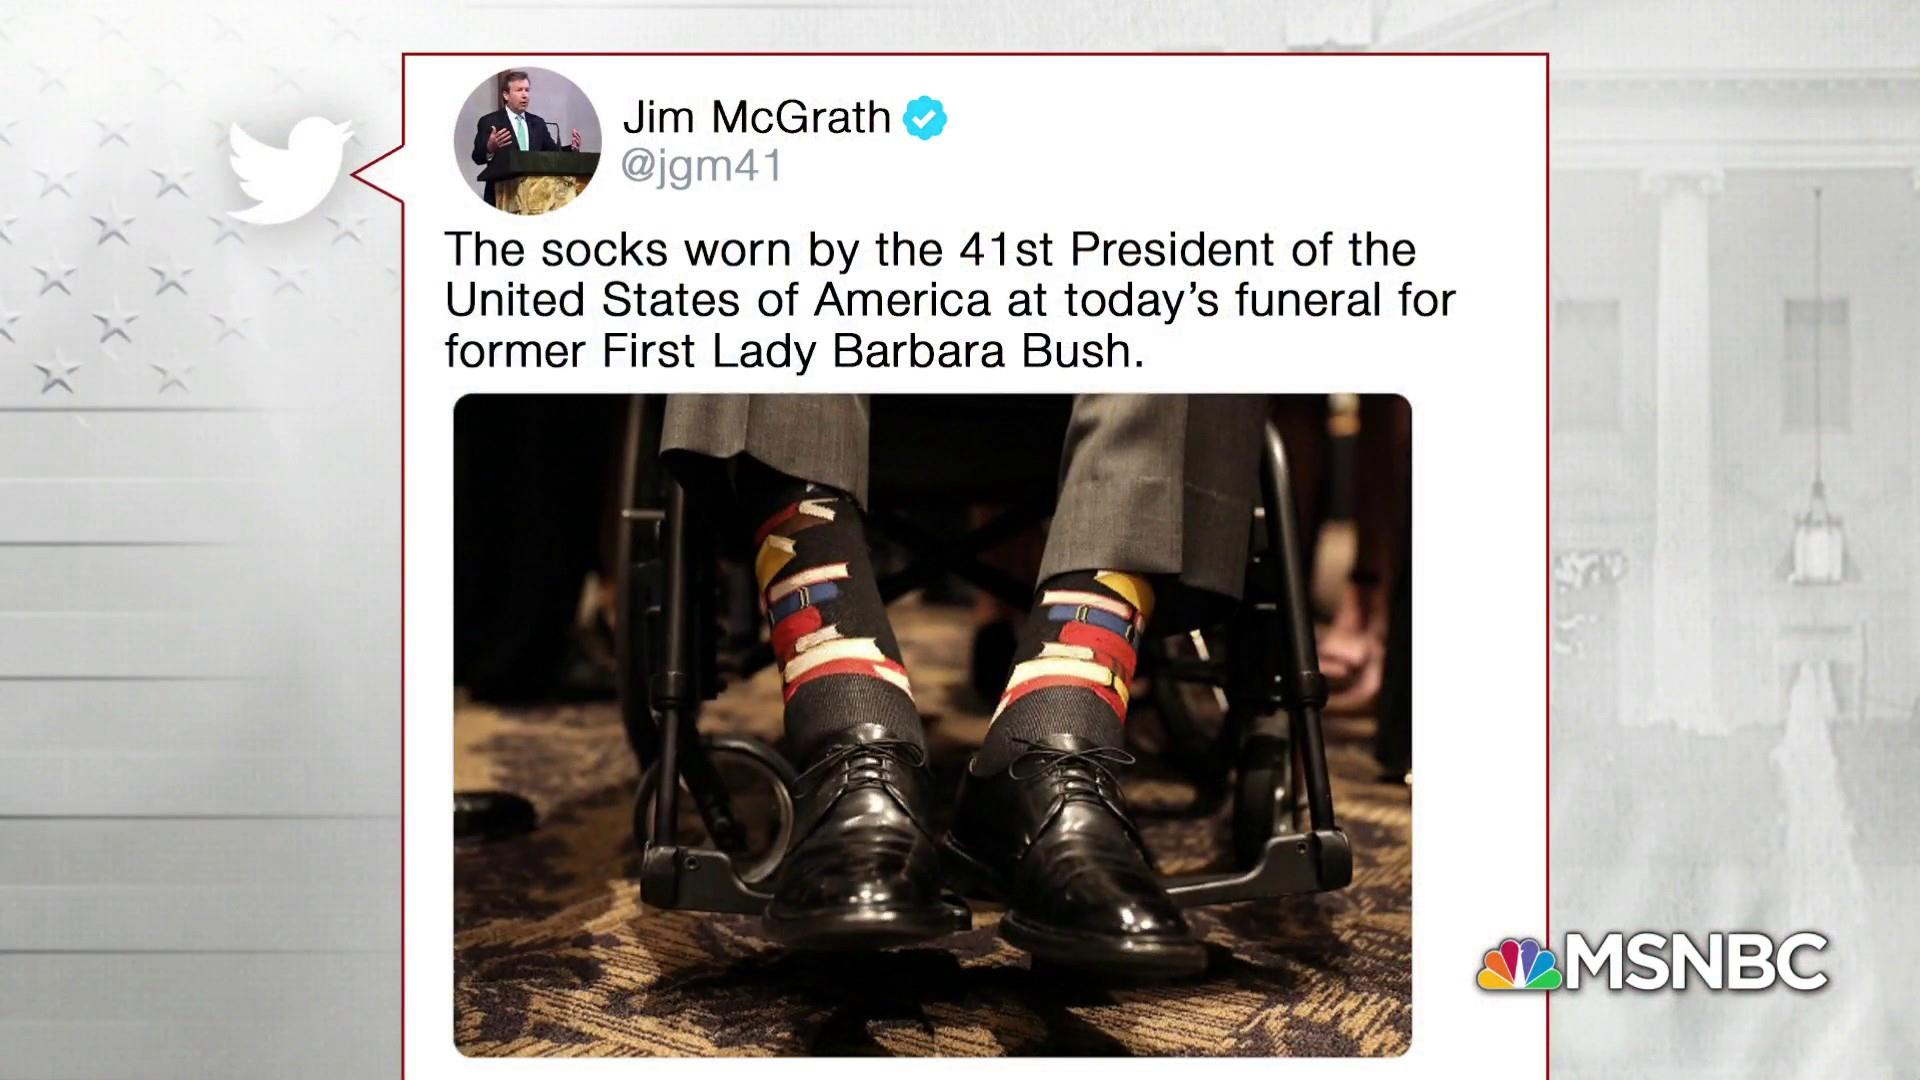 Remembering H.W. Bush: The president and his whimsical socks